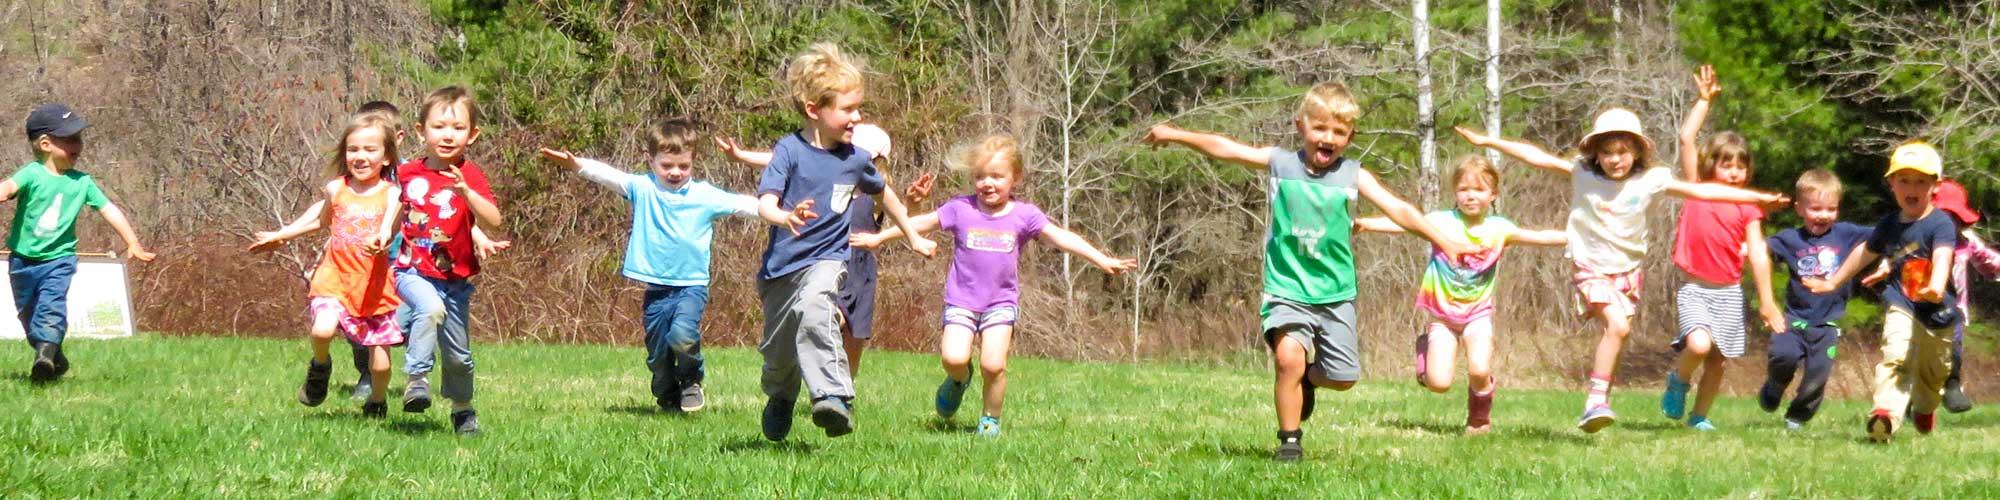 Blue Heron School students running through field